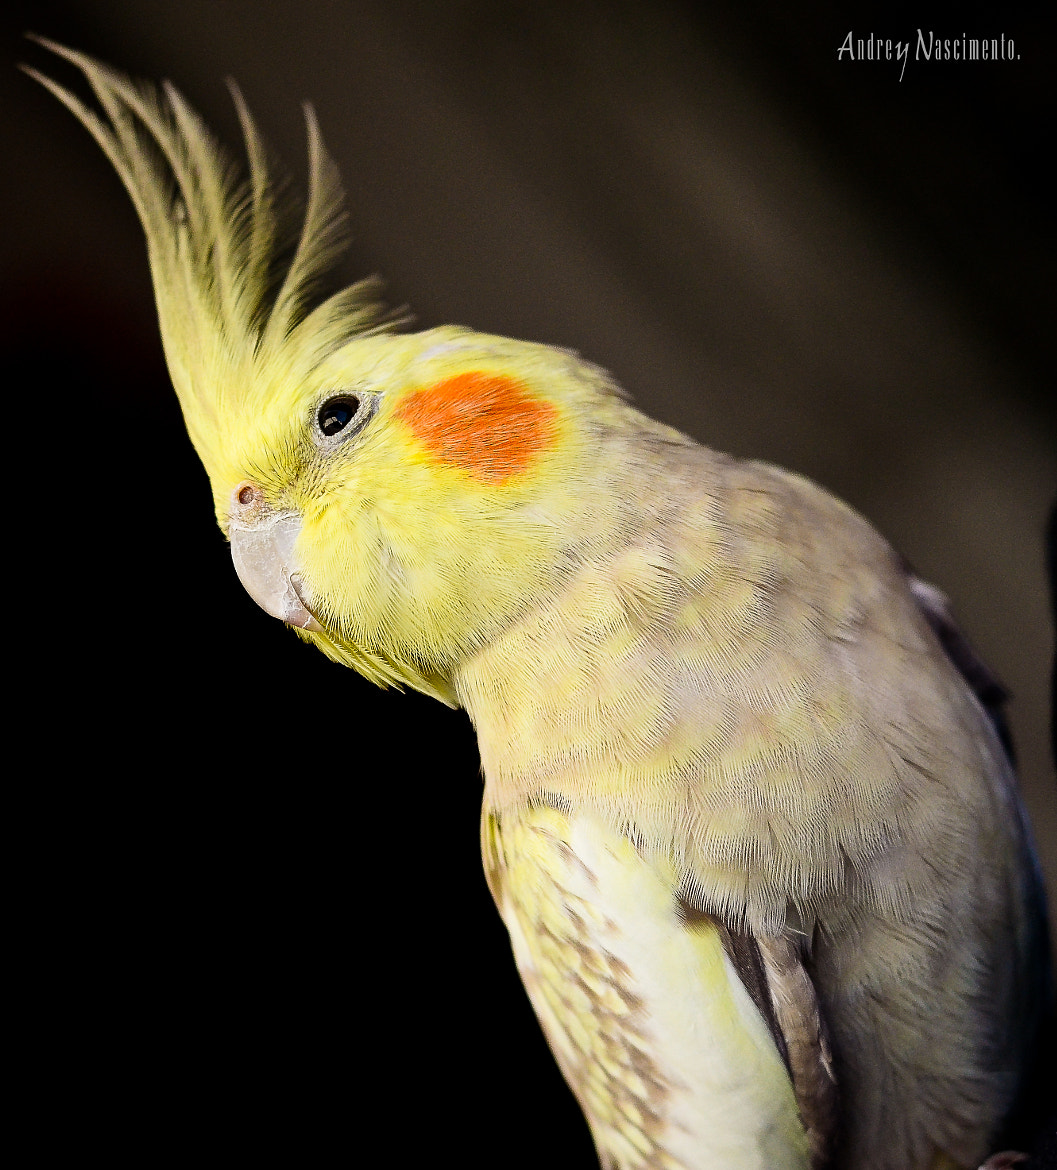 Photograph Cockatiel by Andrey Nascimento on 500px